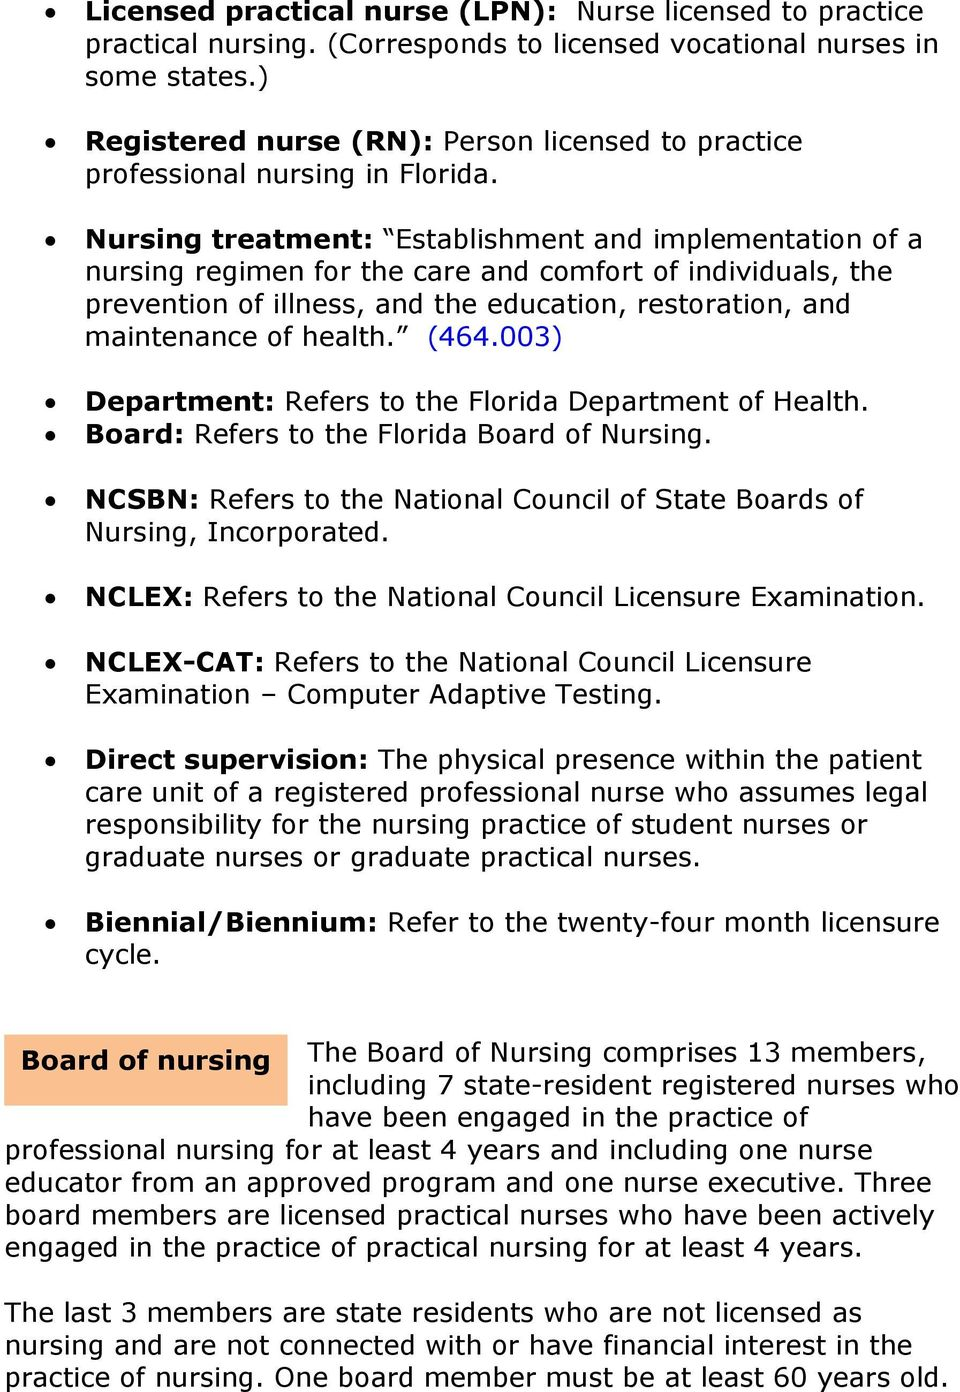 Nursing treatment: Establishment and implementation of a nursing regimen for the care and comfort of individuals, the prevention of illness, and the education, restoration, and maintenance of health.